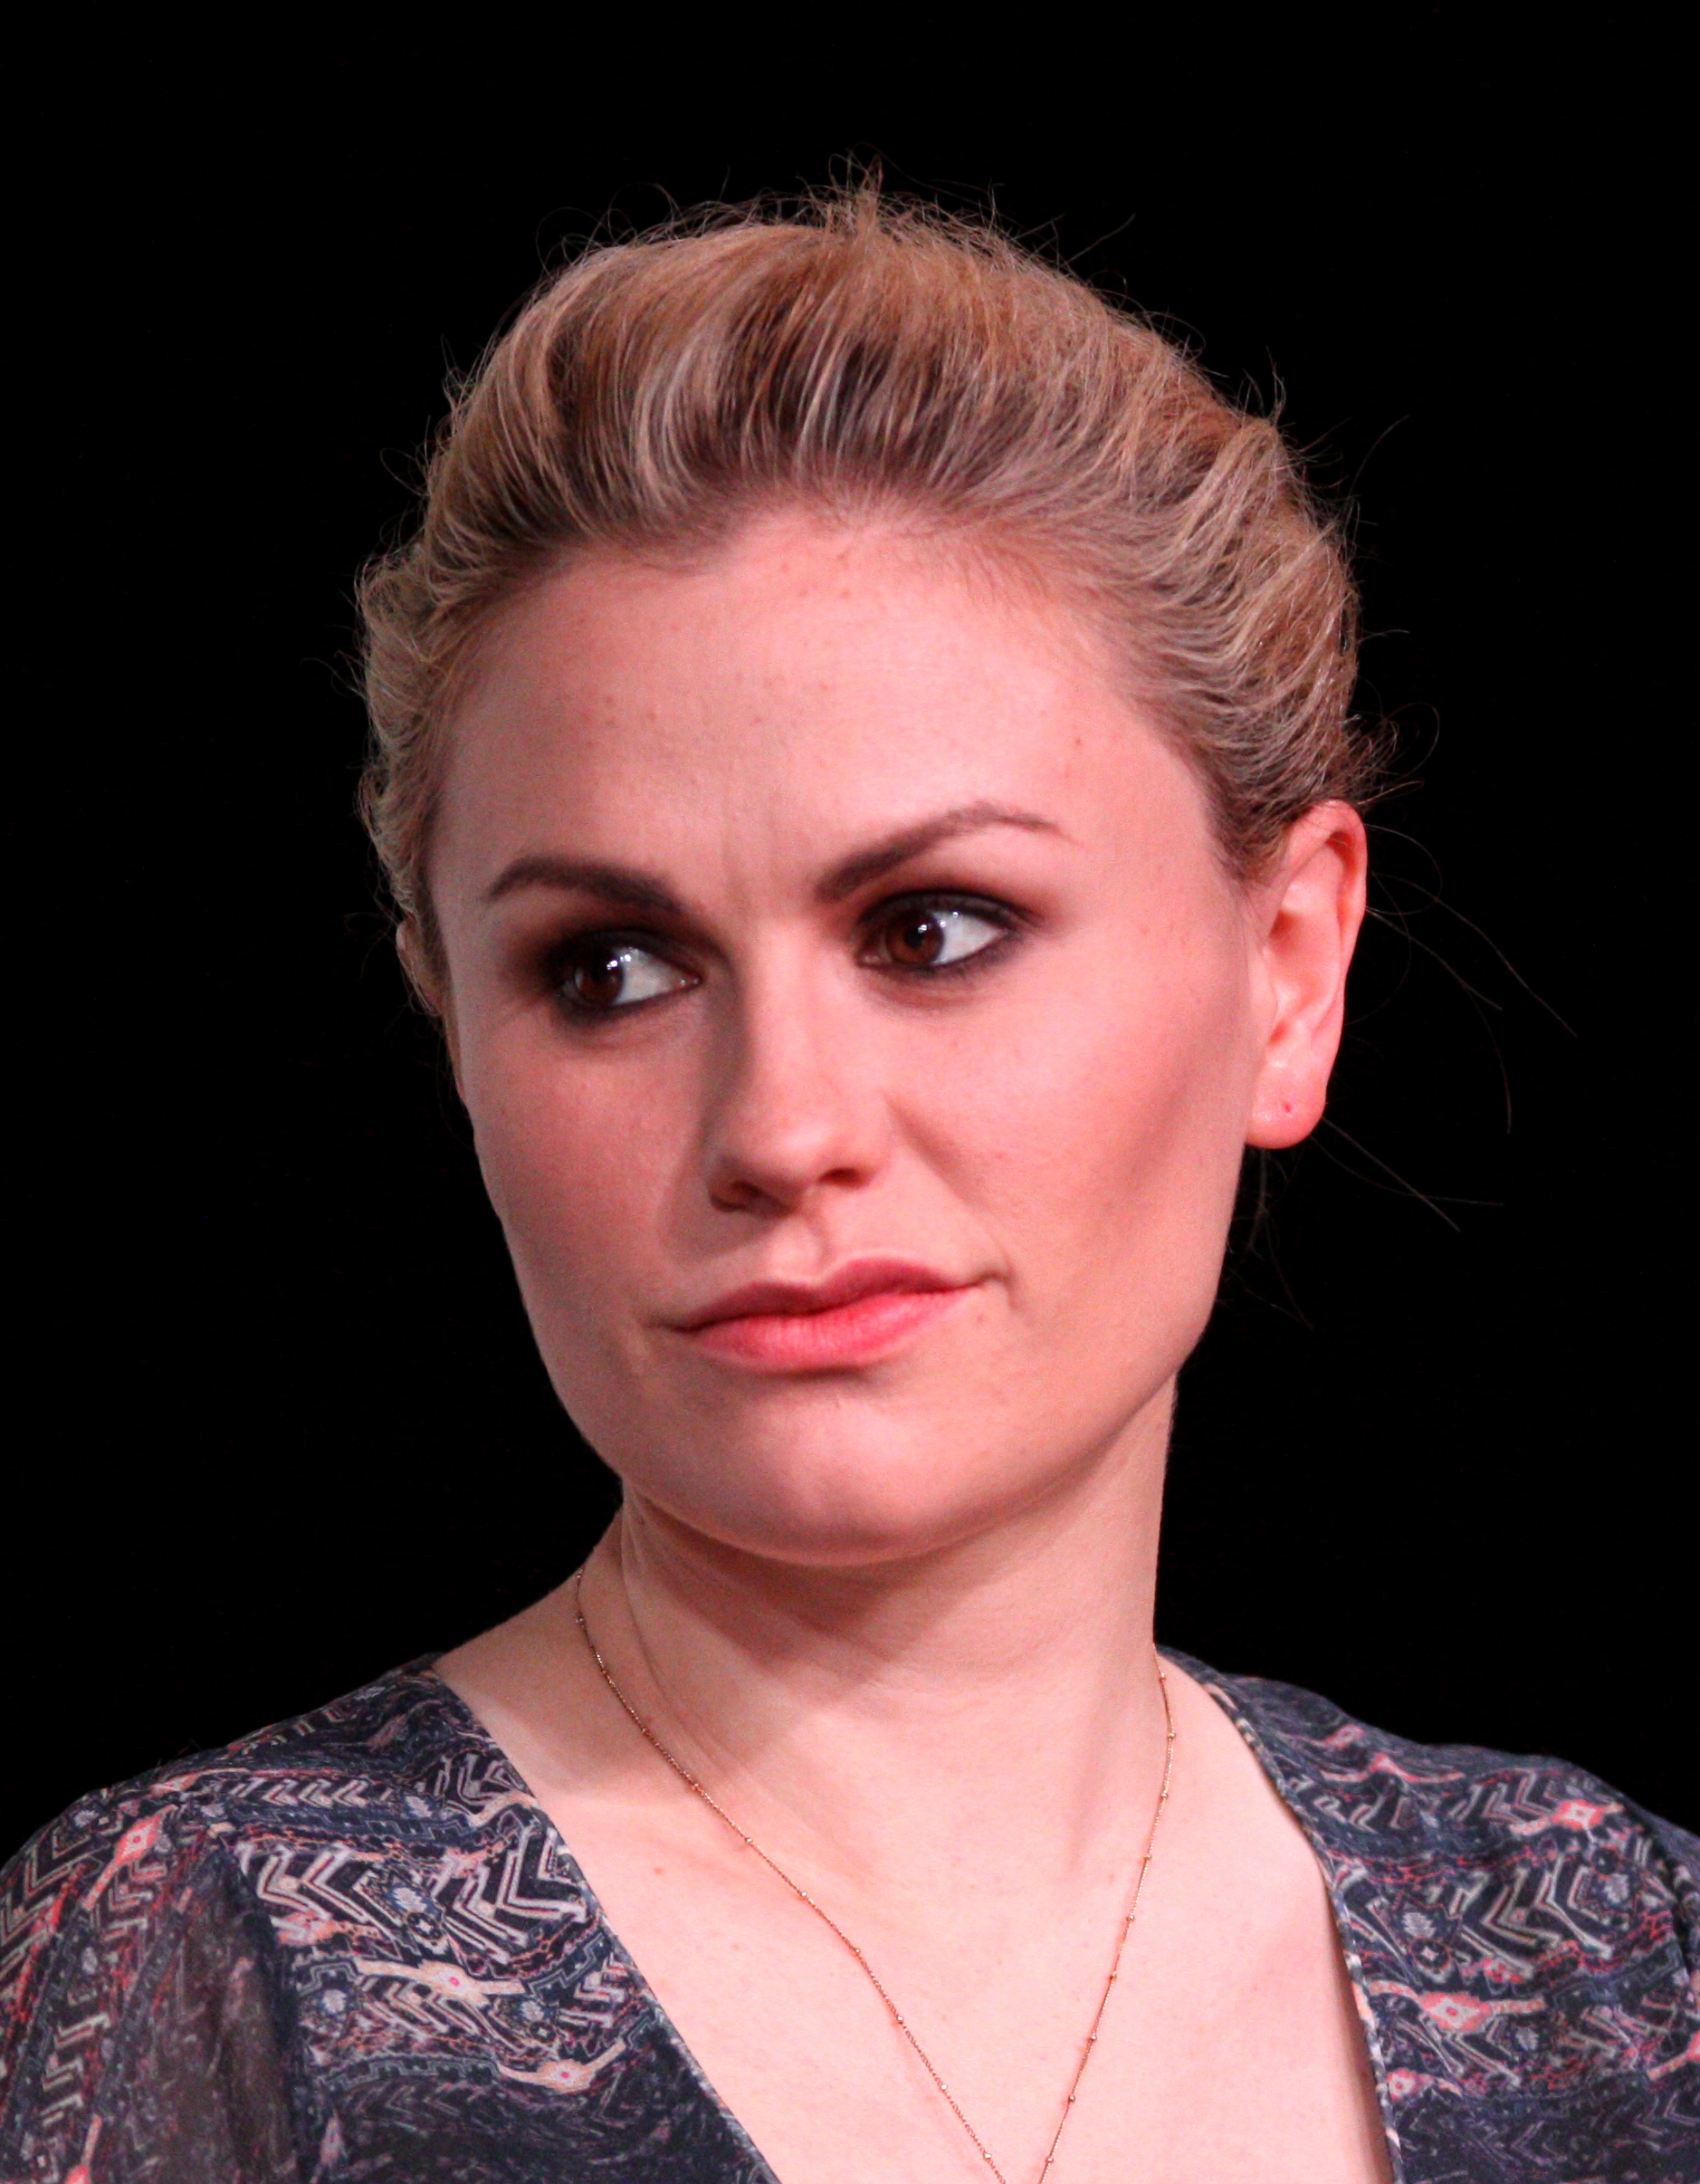 Depiction of Anna Paquin